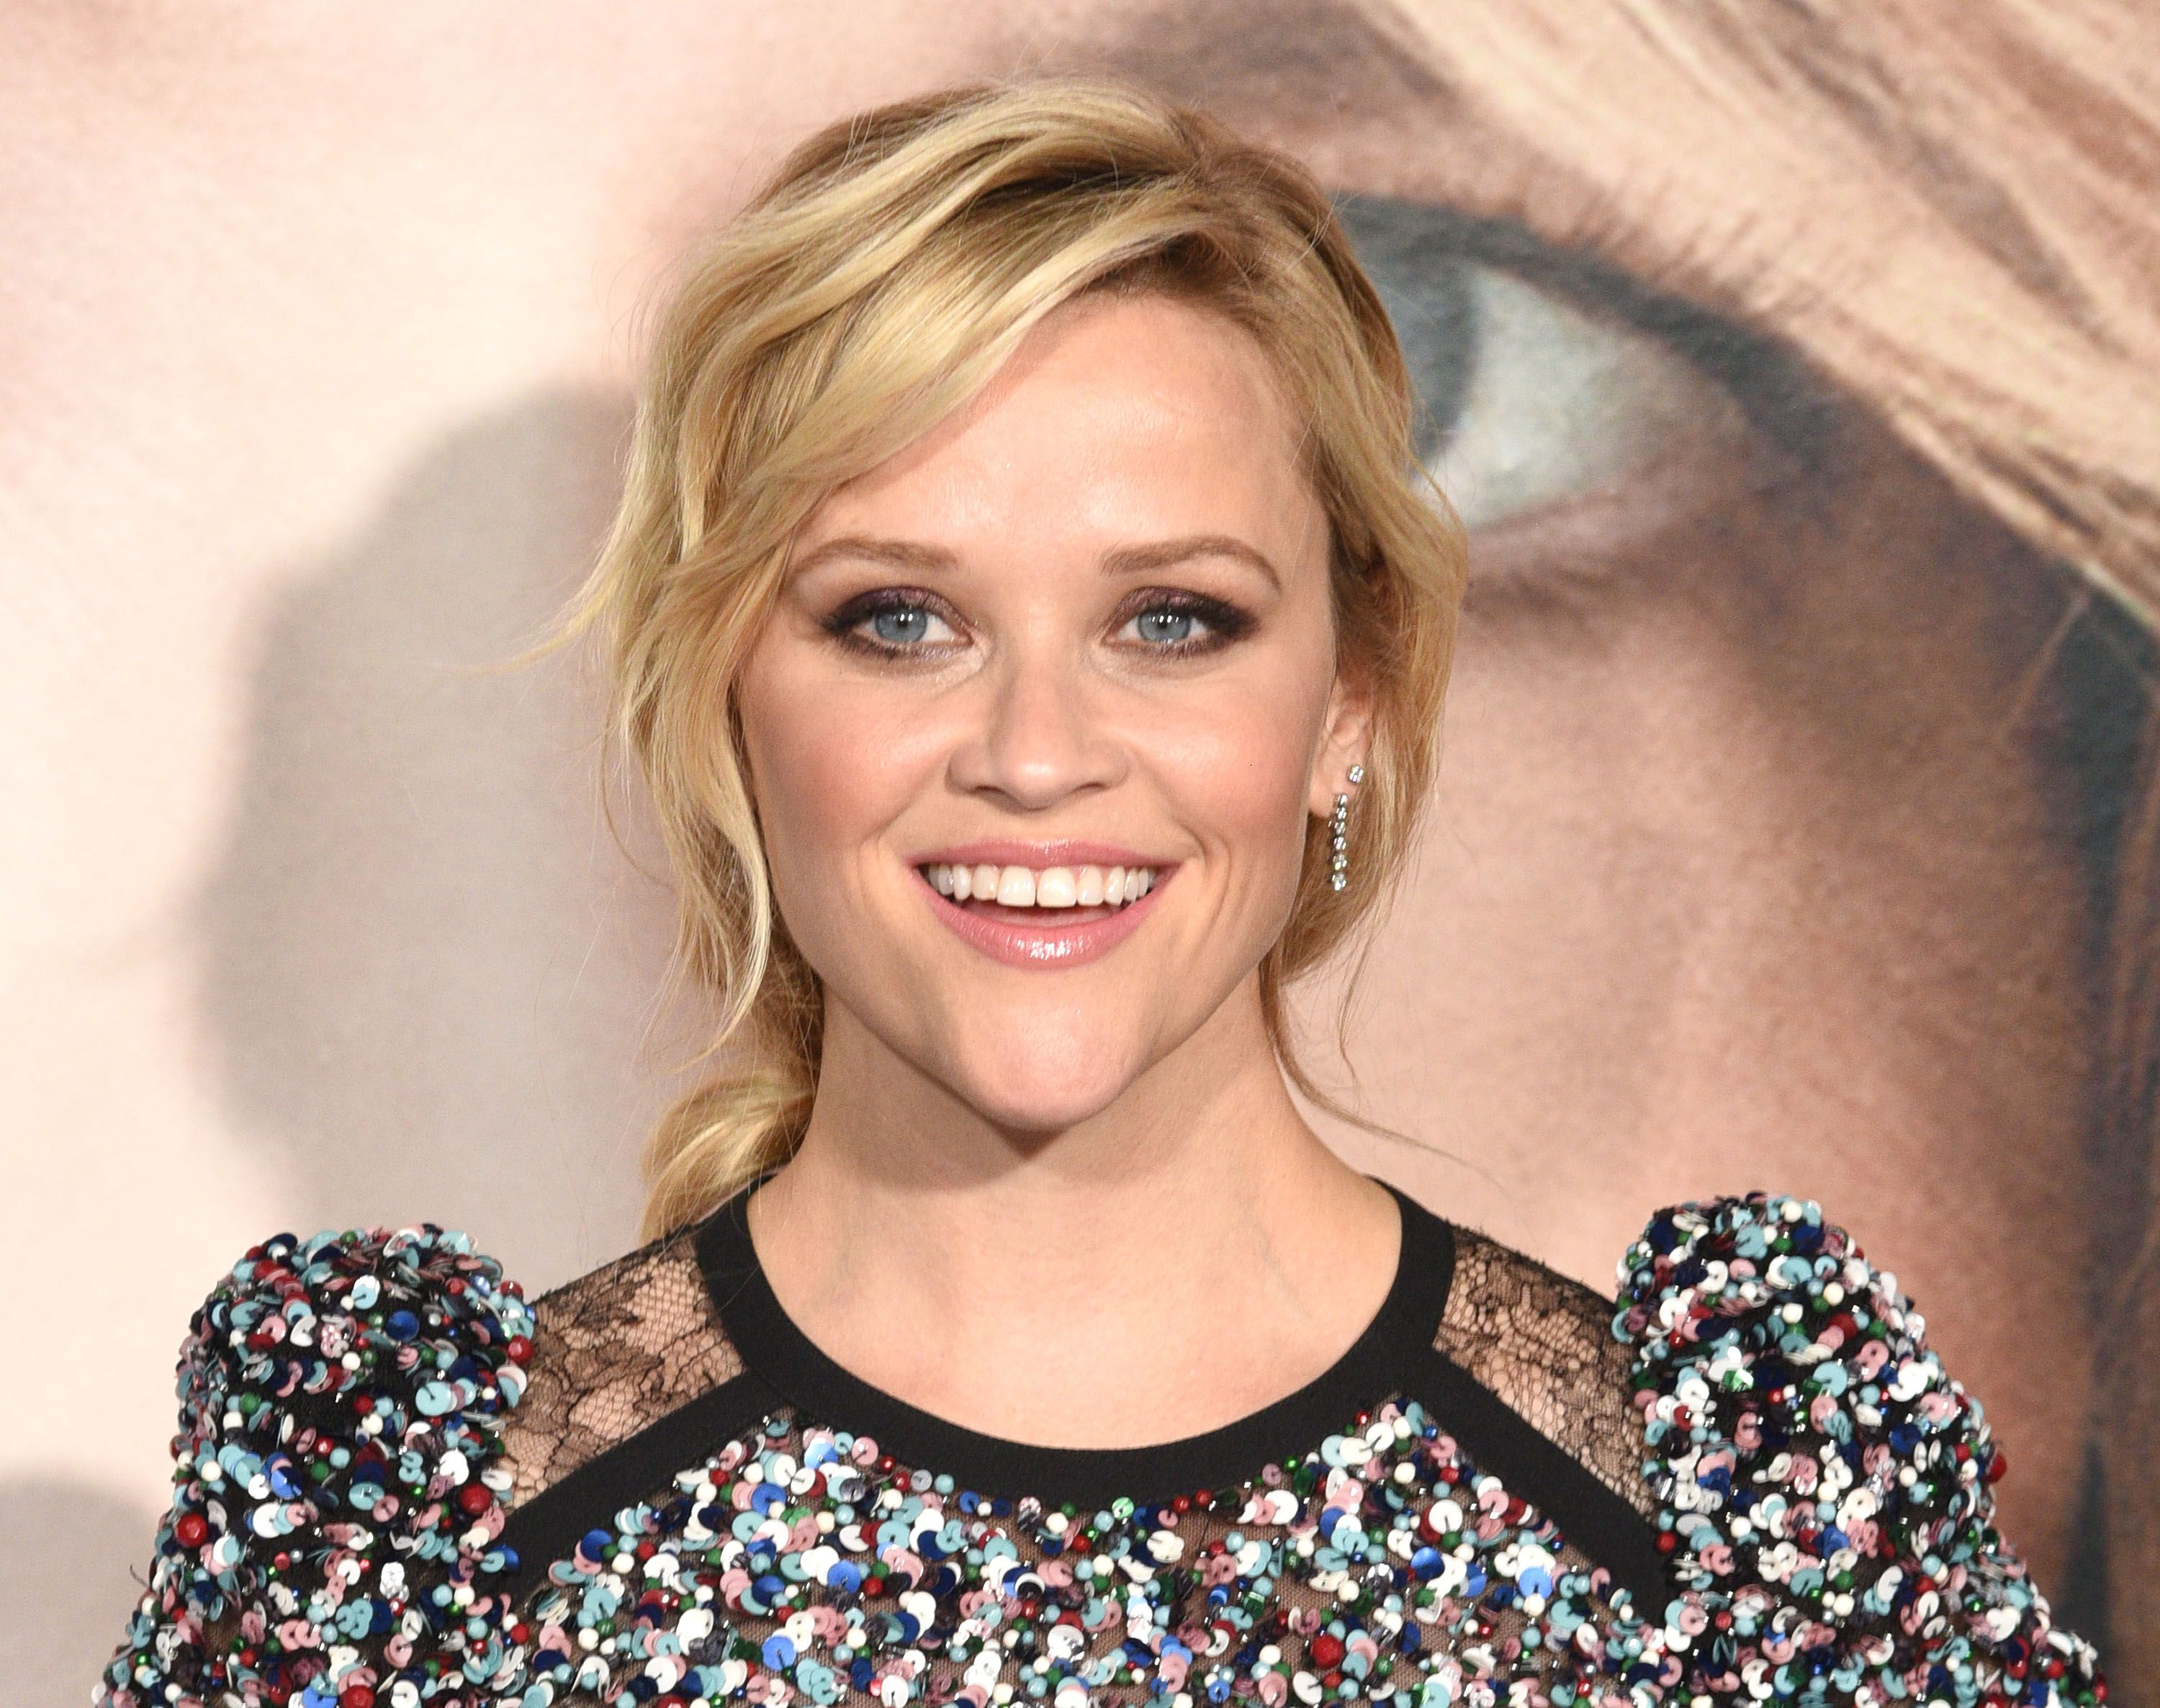 Actress Reese Witherspoon at the premiere of HBO's 'Big Little Lies' at TCL Chinese Theatre on February 7, 2017 in Hollywood, California. | Photo: Getty Images